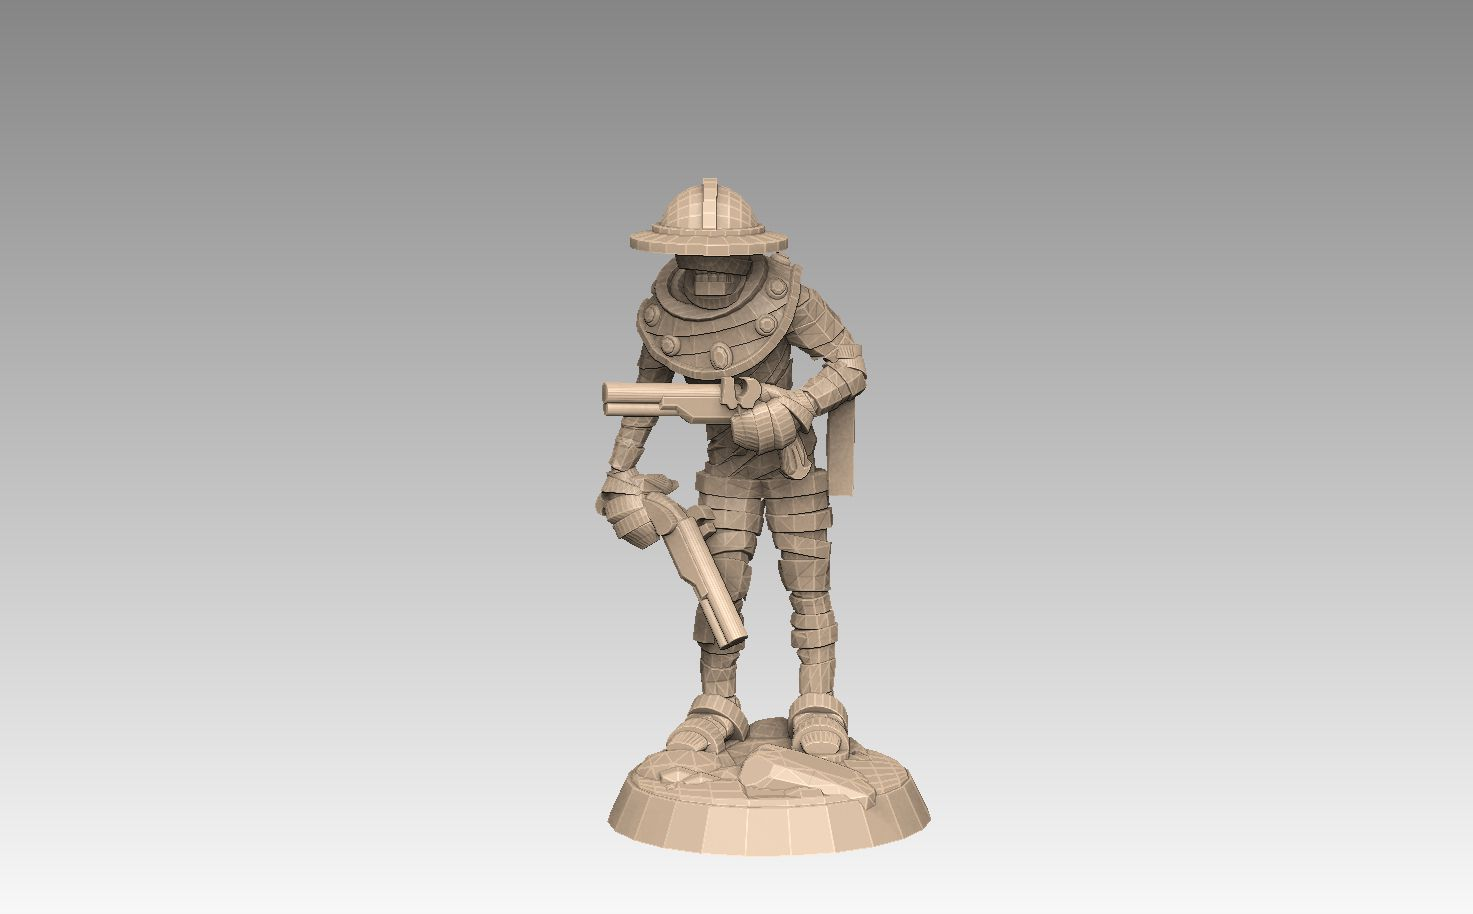 mh2-prom3f.jpg Download STL file Mummy Pack 1 • 3D printing object, SharedogMiniatures